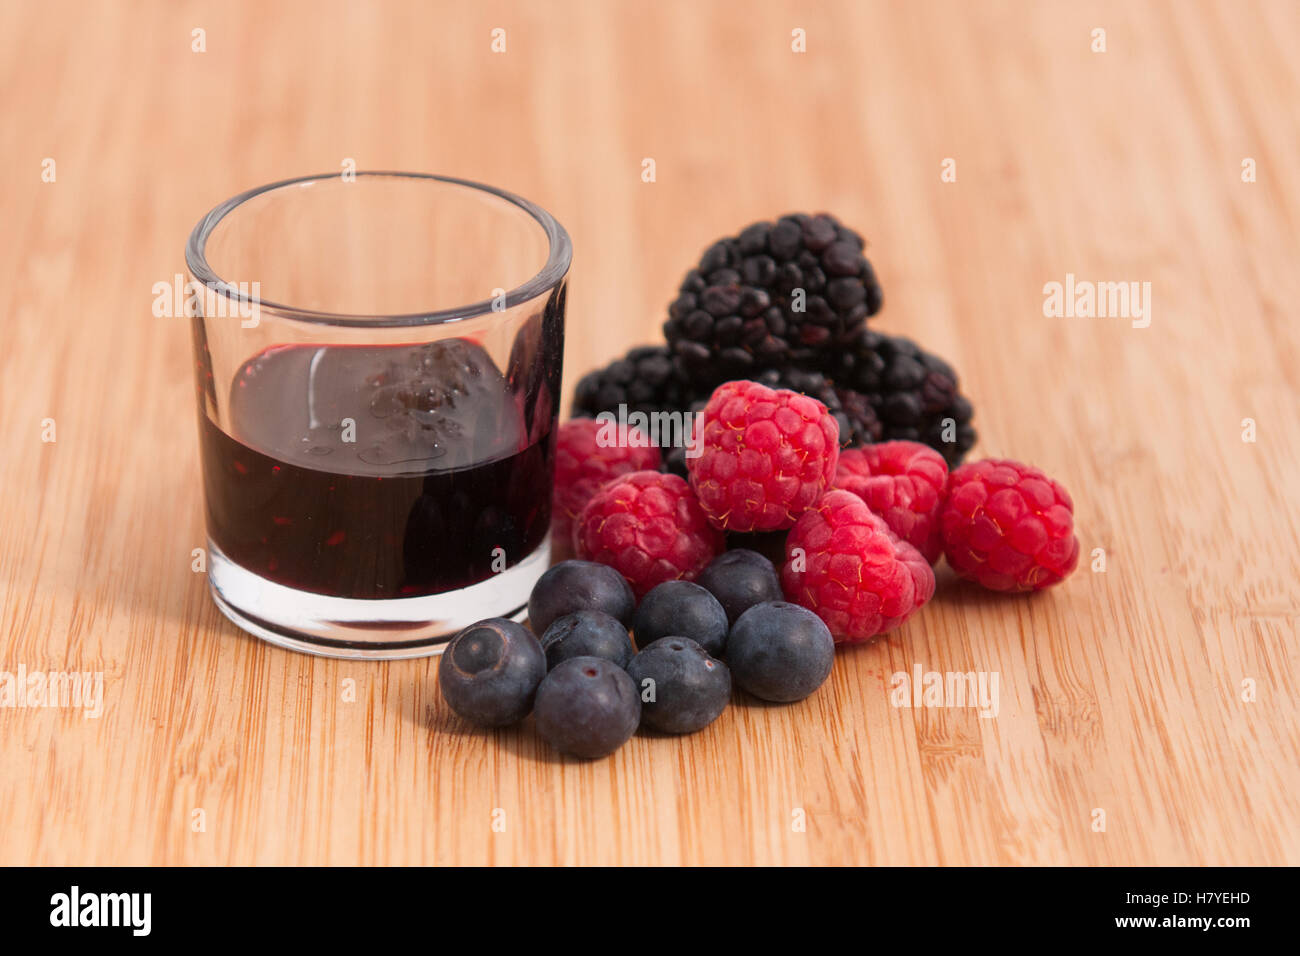 Natural flavored liquid for pastry of red fruits - Stock Image